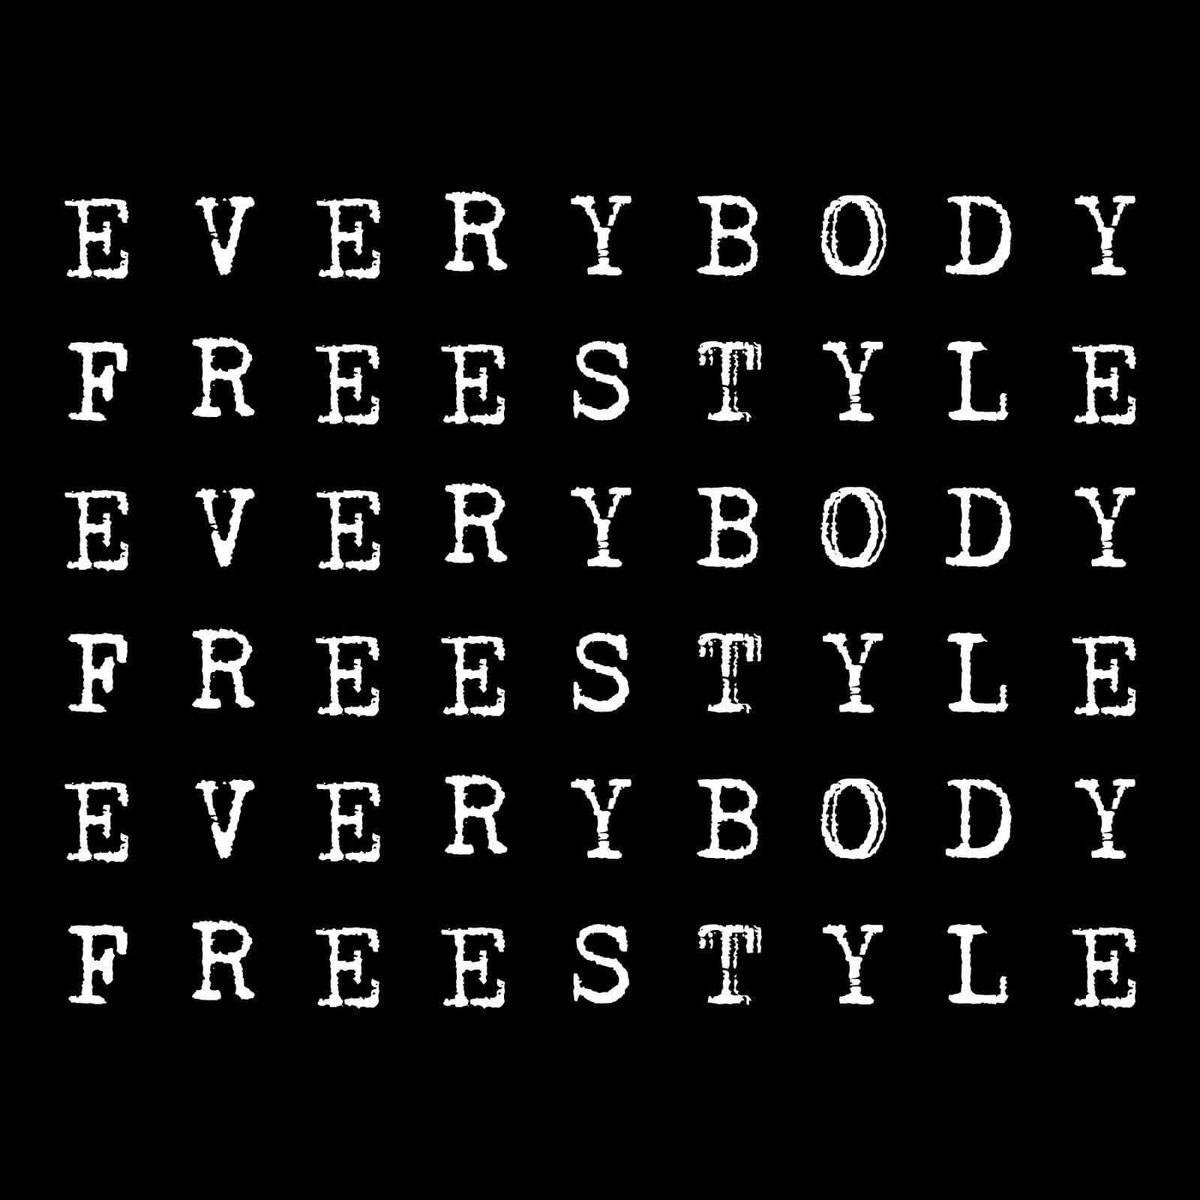 New Freestyle out now!!!  http:// bit.ly/2uNTuF1  &nbsp;   #Everybody #NewMusic #NewMusicFriday #NowPlaying #logic <br>http://pic.twitter.com/hLQcd319eg